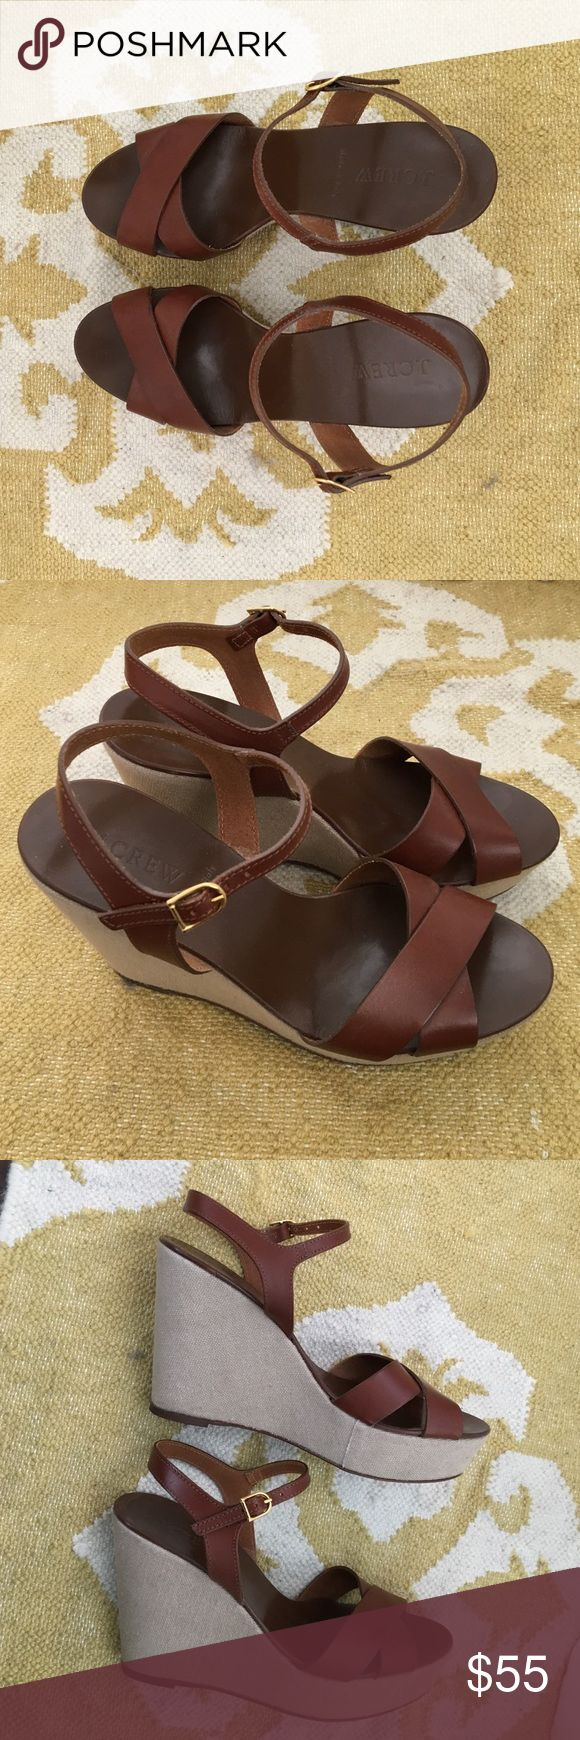 "J. Crew Lila Leather Platform Wedge Shoes Brown leather platform wedges from J. Crew. These shoes were previously worn, but very few times. The shoes have an adjustable ankle strap and are 4"" tall with a 1.5"" platform at the toe.  Made in Italy. Size 8. J. Crew Shoes Wedges"